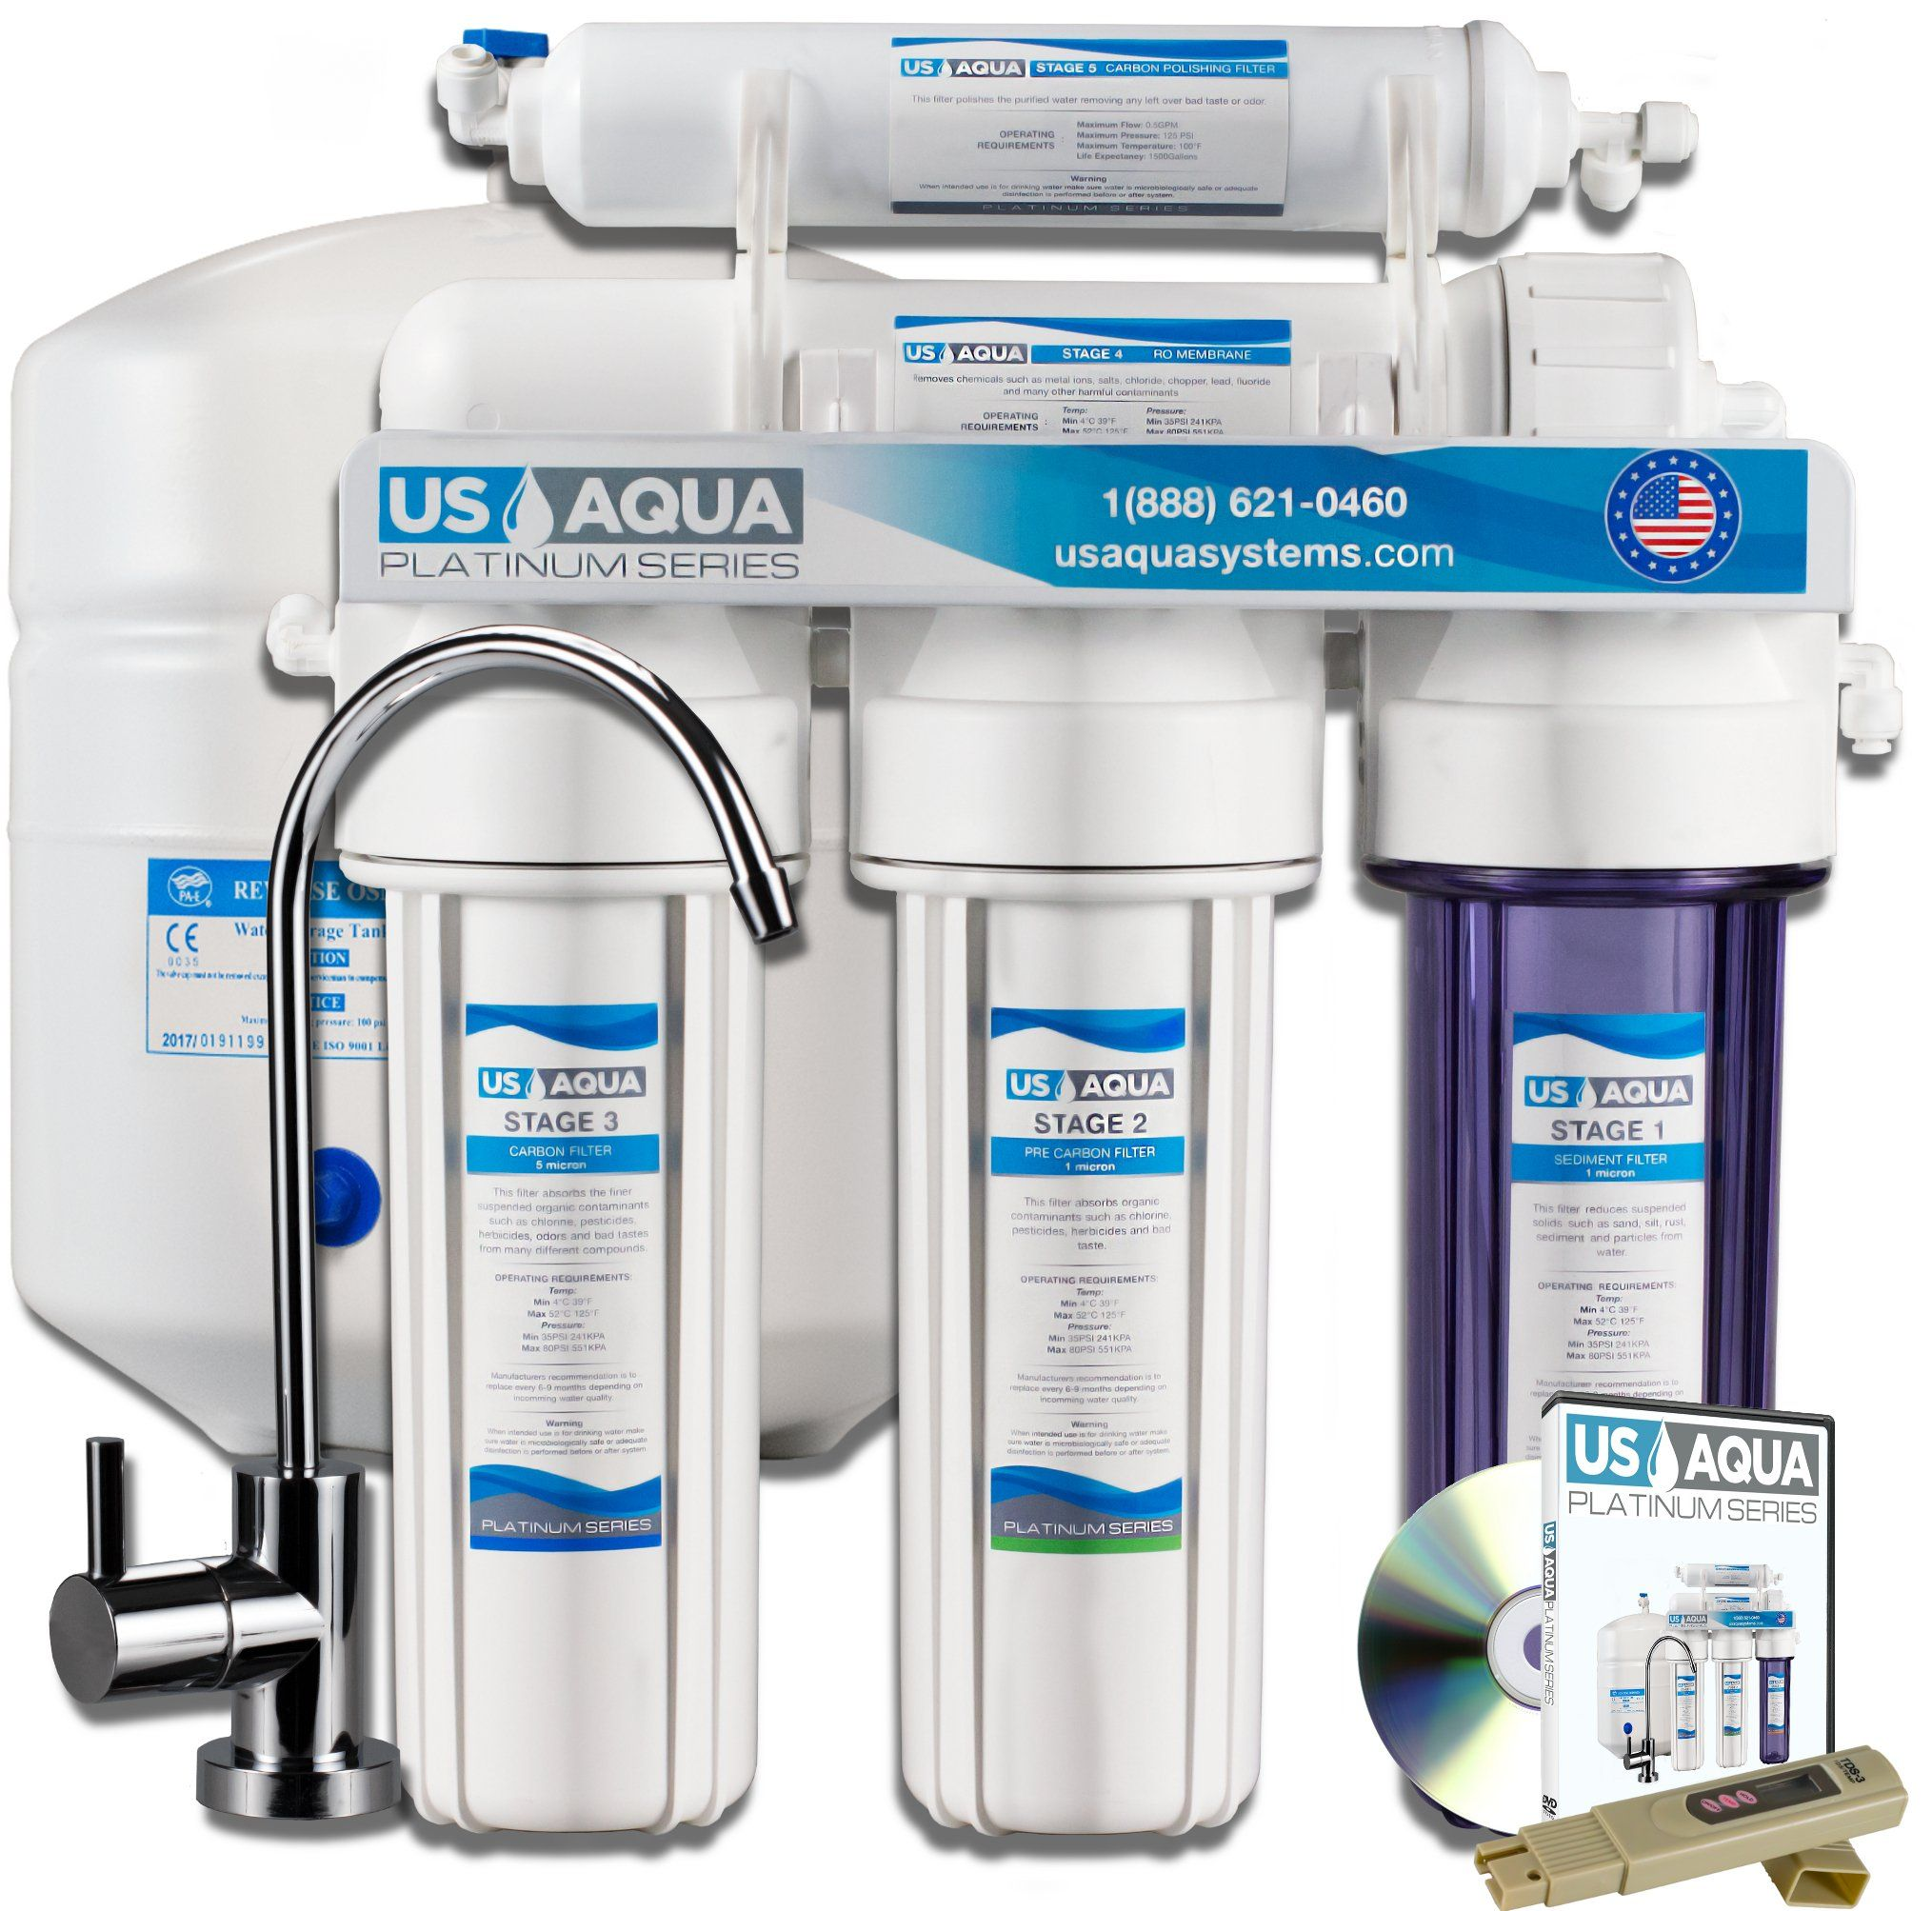 Us Aqua Platinum Series Deluxe High Capacity 100gpd Under Sink Reverse Osmosis Purifier Drinki Best Water Filter Water Purification System Water Filters System